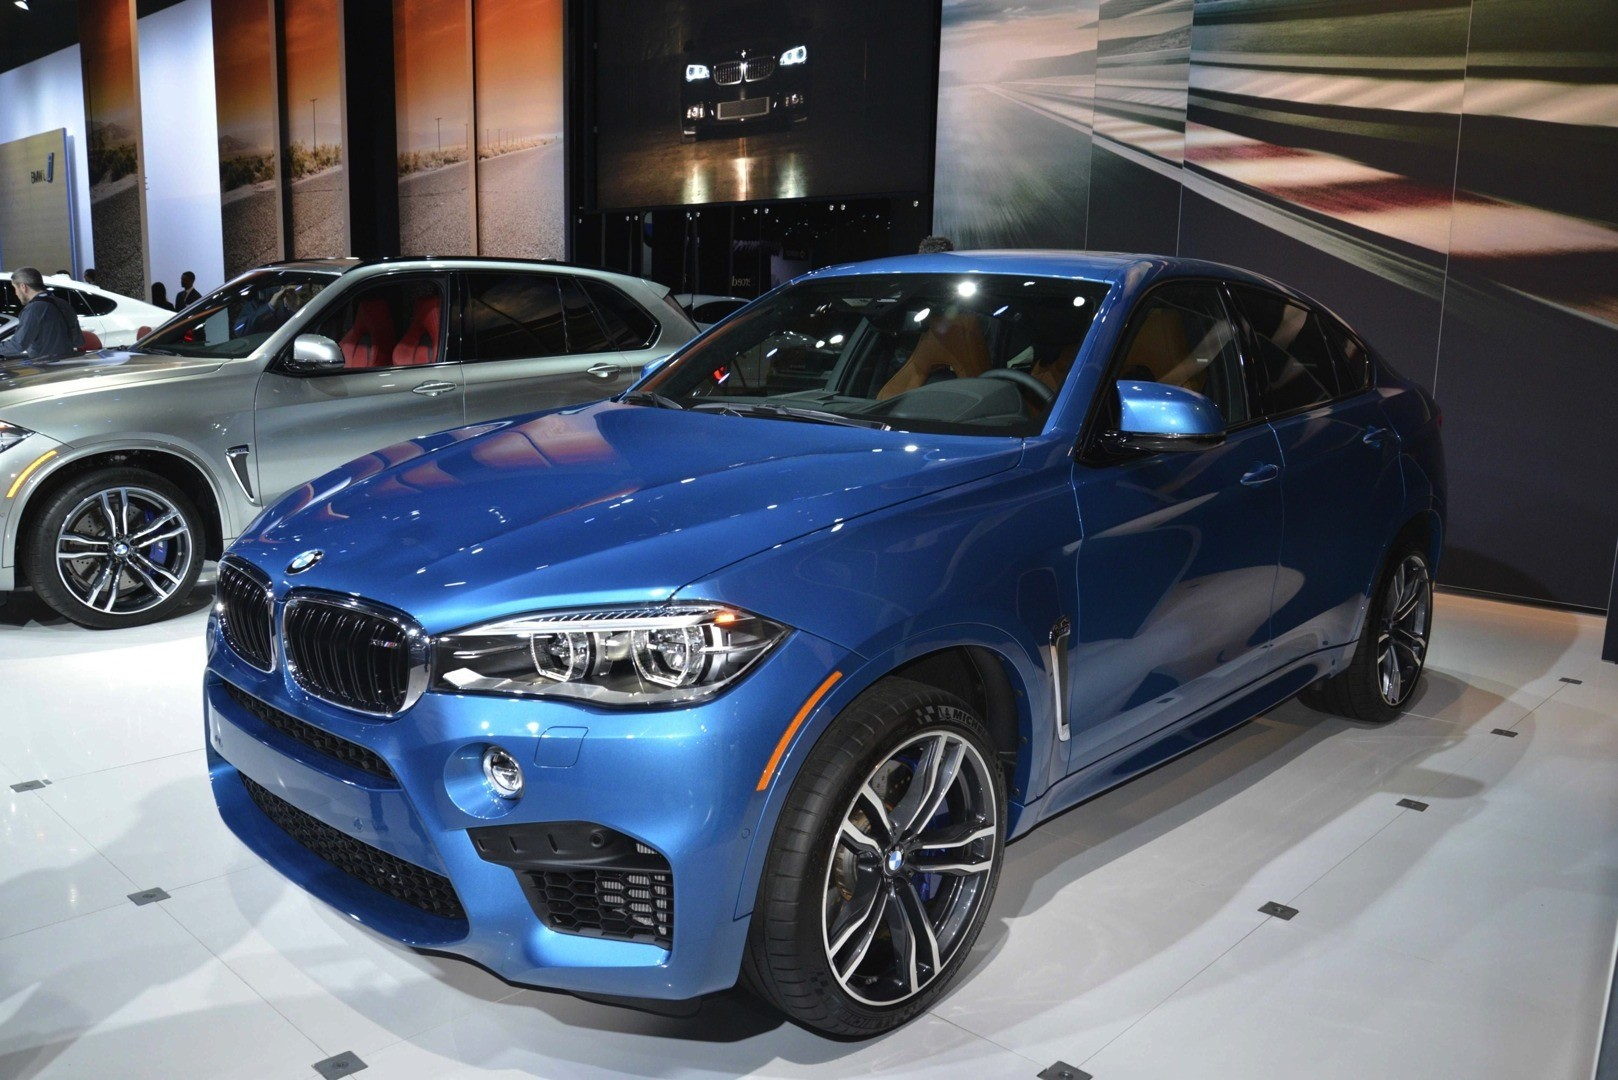 Color car los angeles - Bmw X5 M And X6 M Show Up In La With New Colors